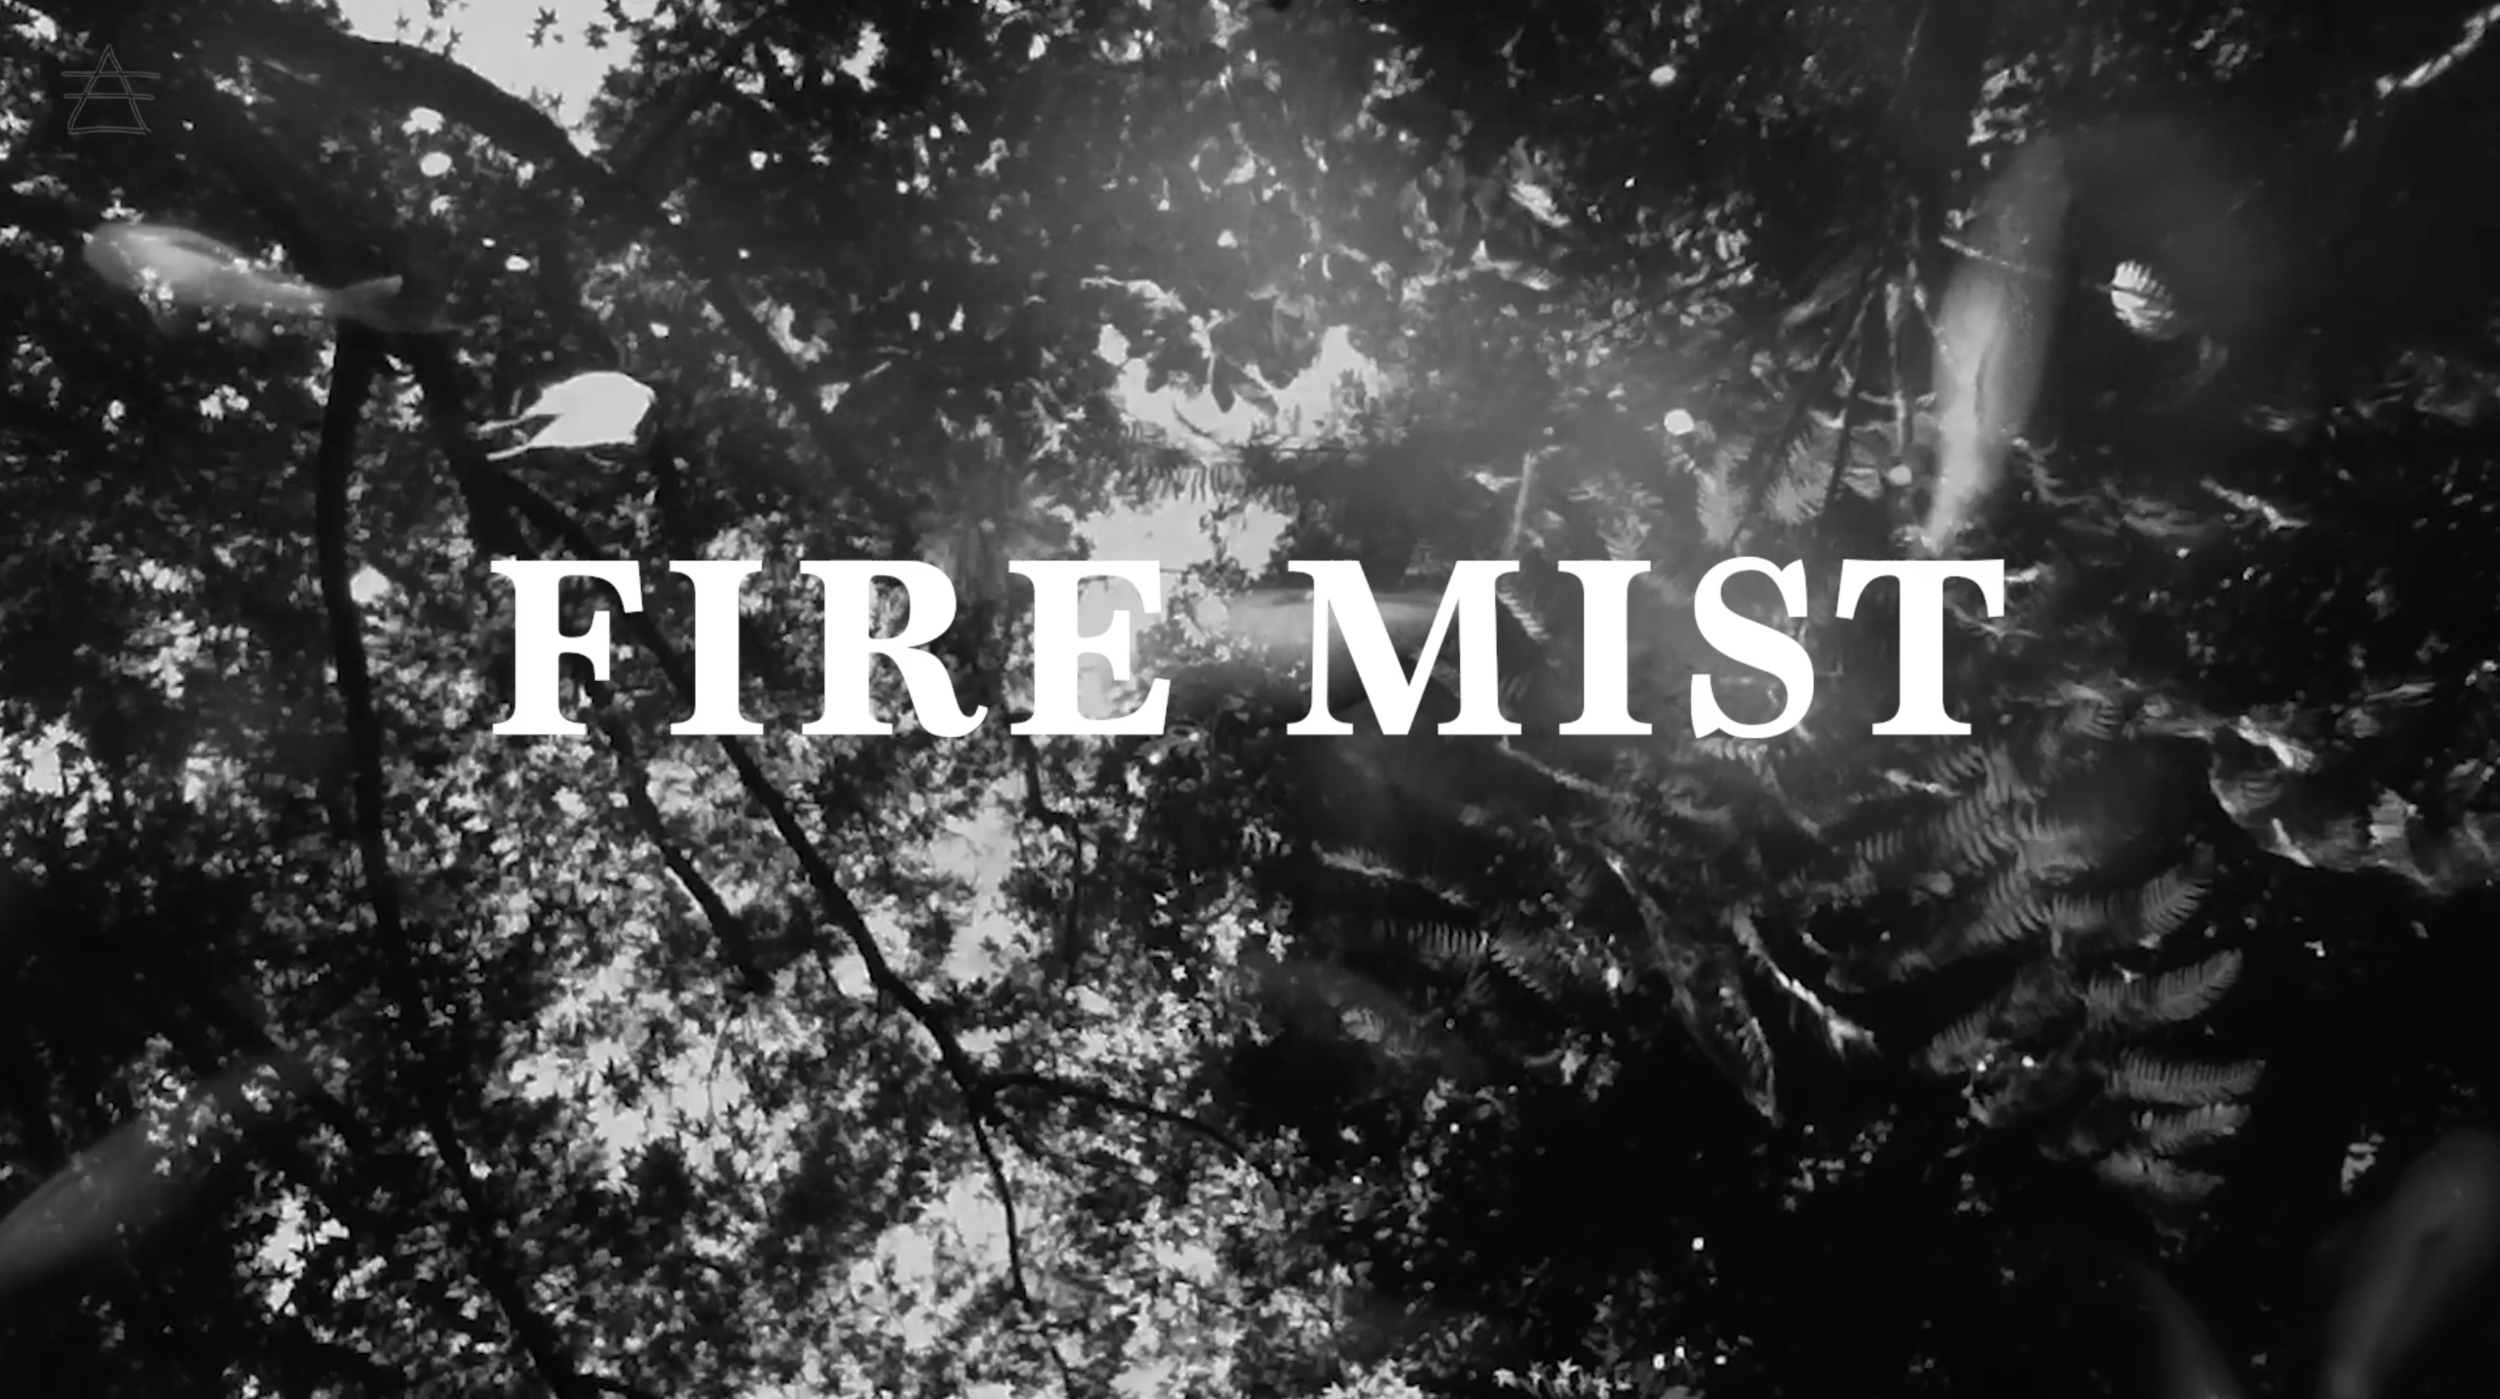 fire mist - tell me your secrets music gypsypop lyric video still1.png